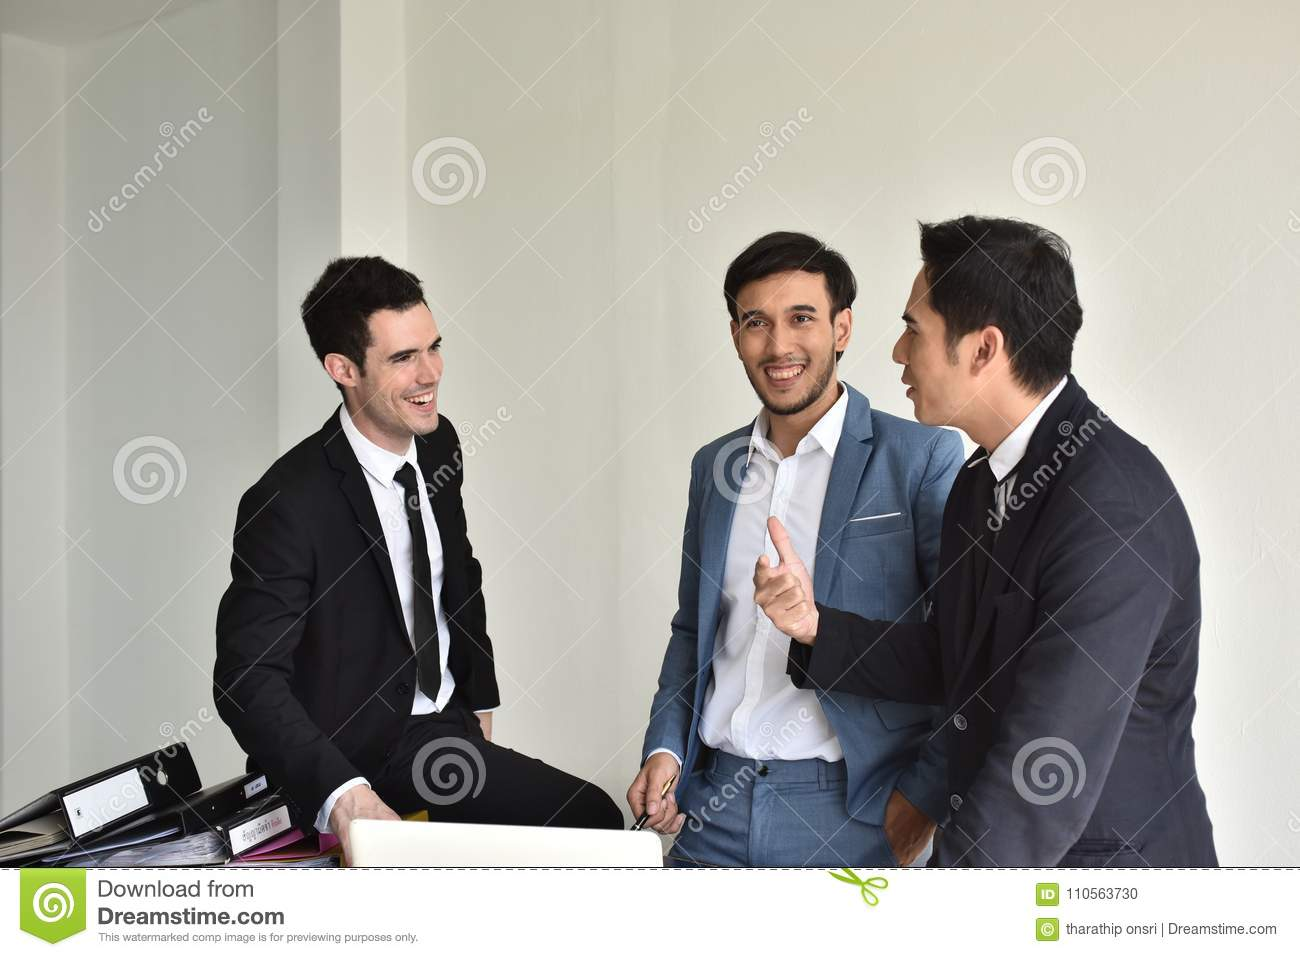 Businessmen Employees or business people are delighted to receive good news.